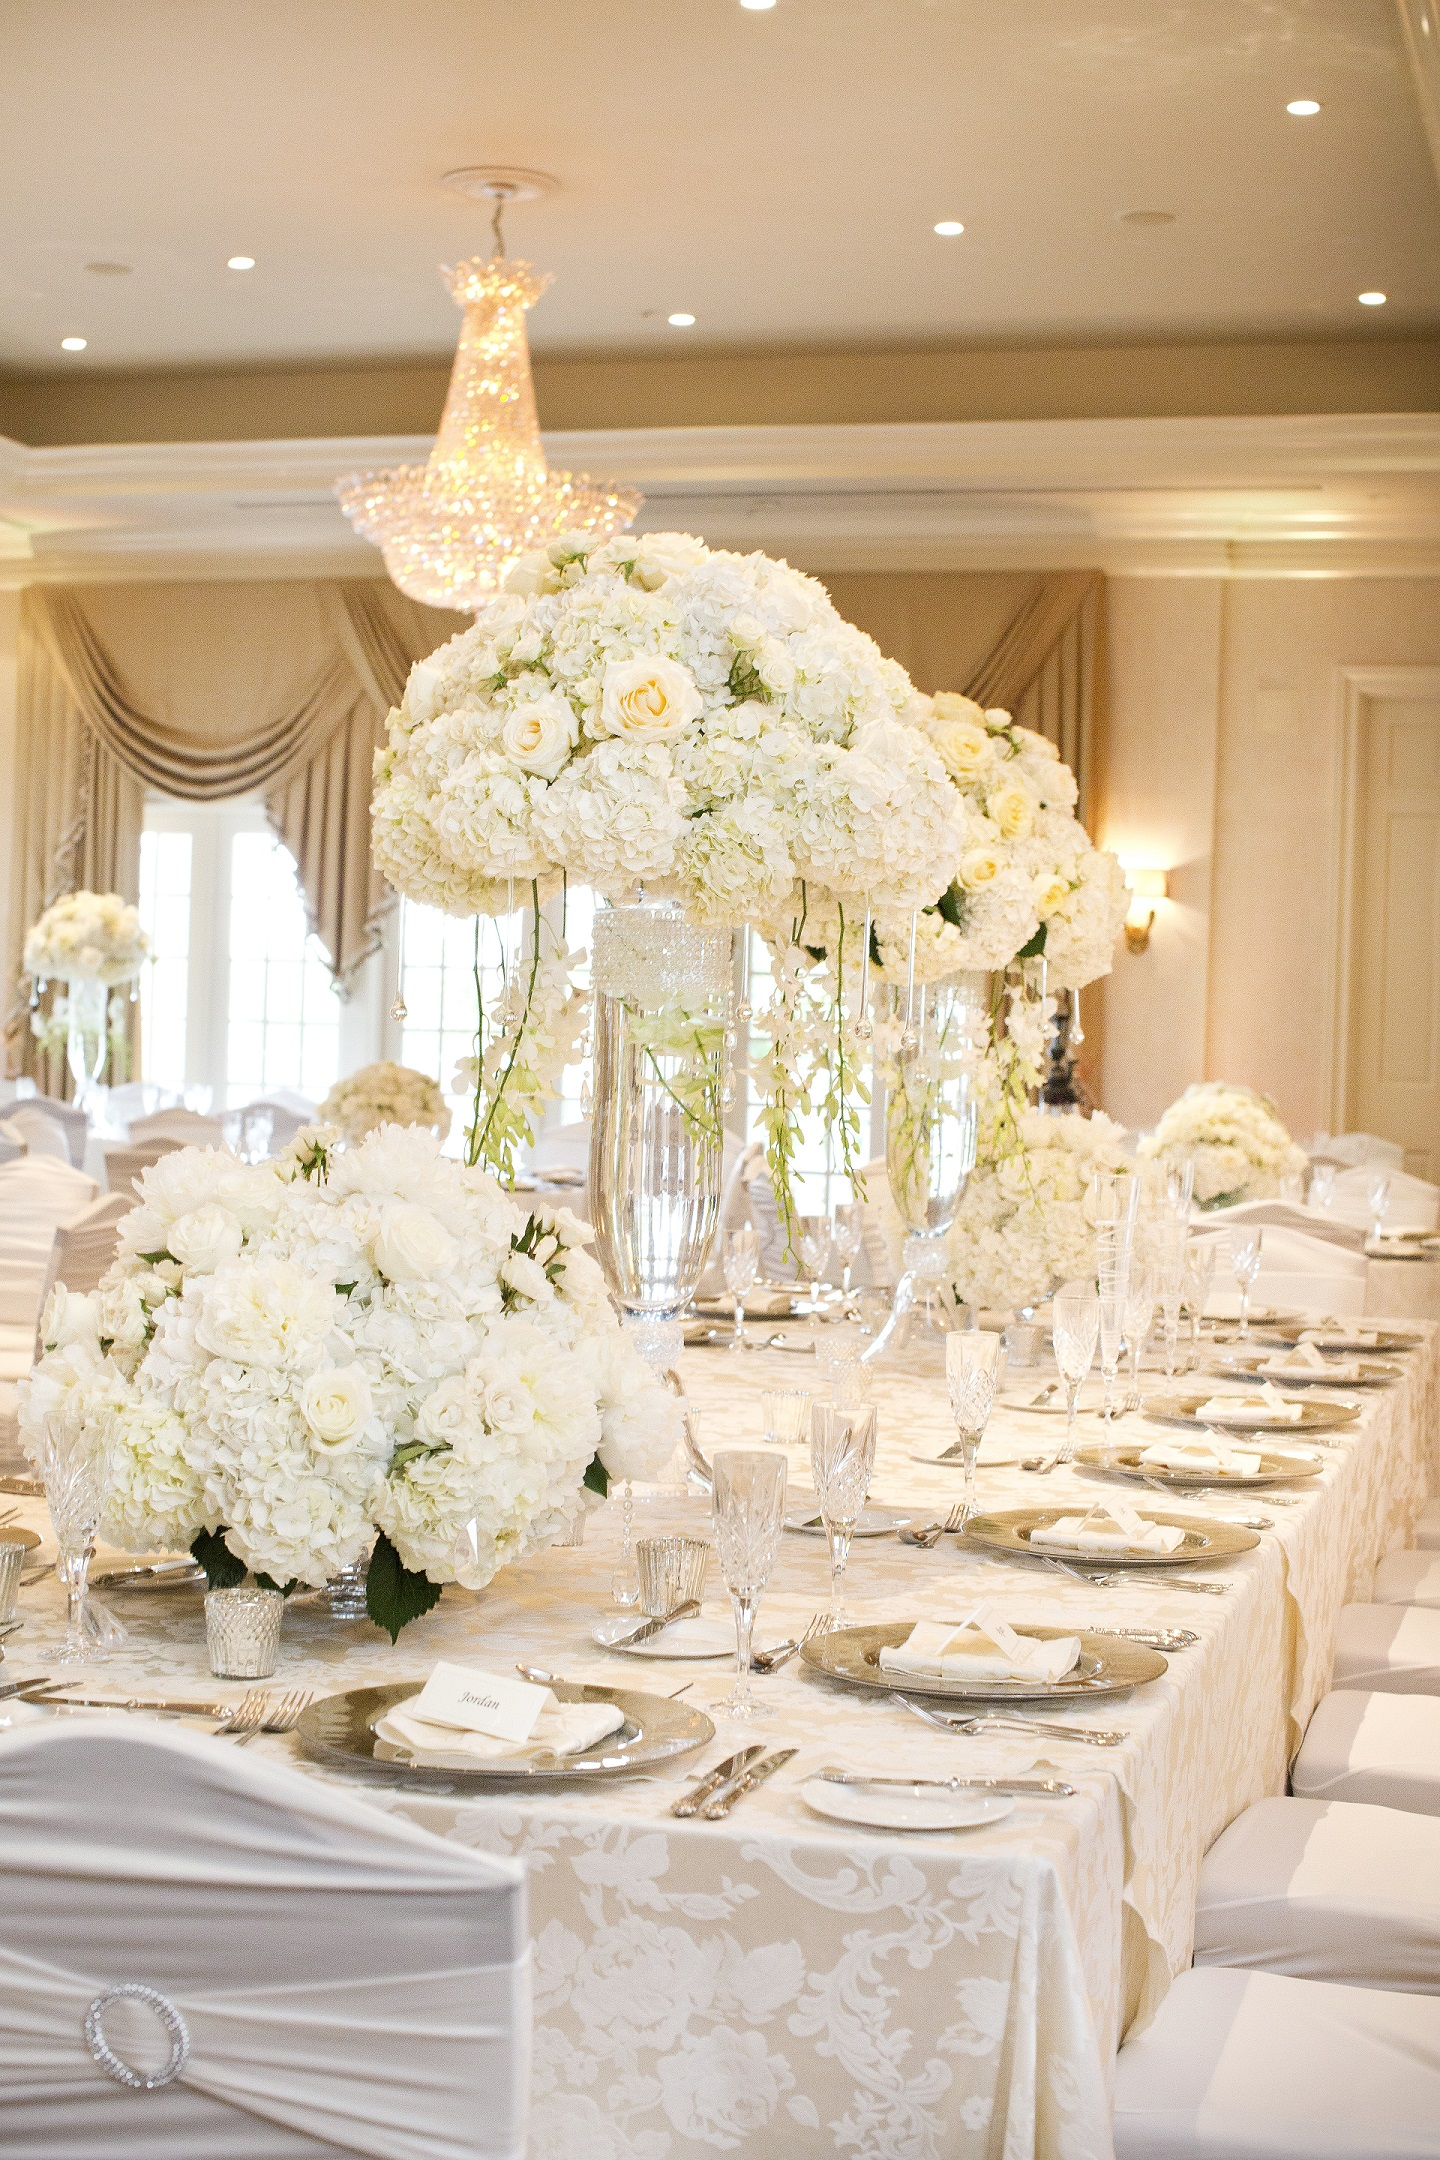 Sweetheart Table vs Head Table Which is Best for Your